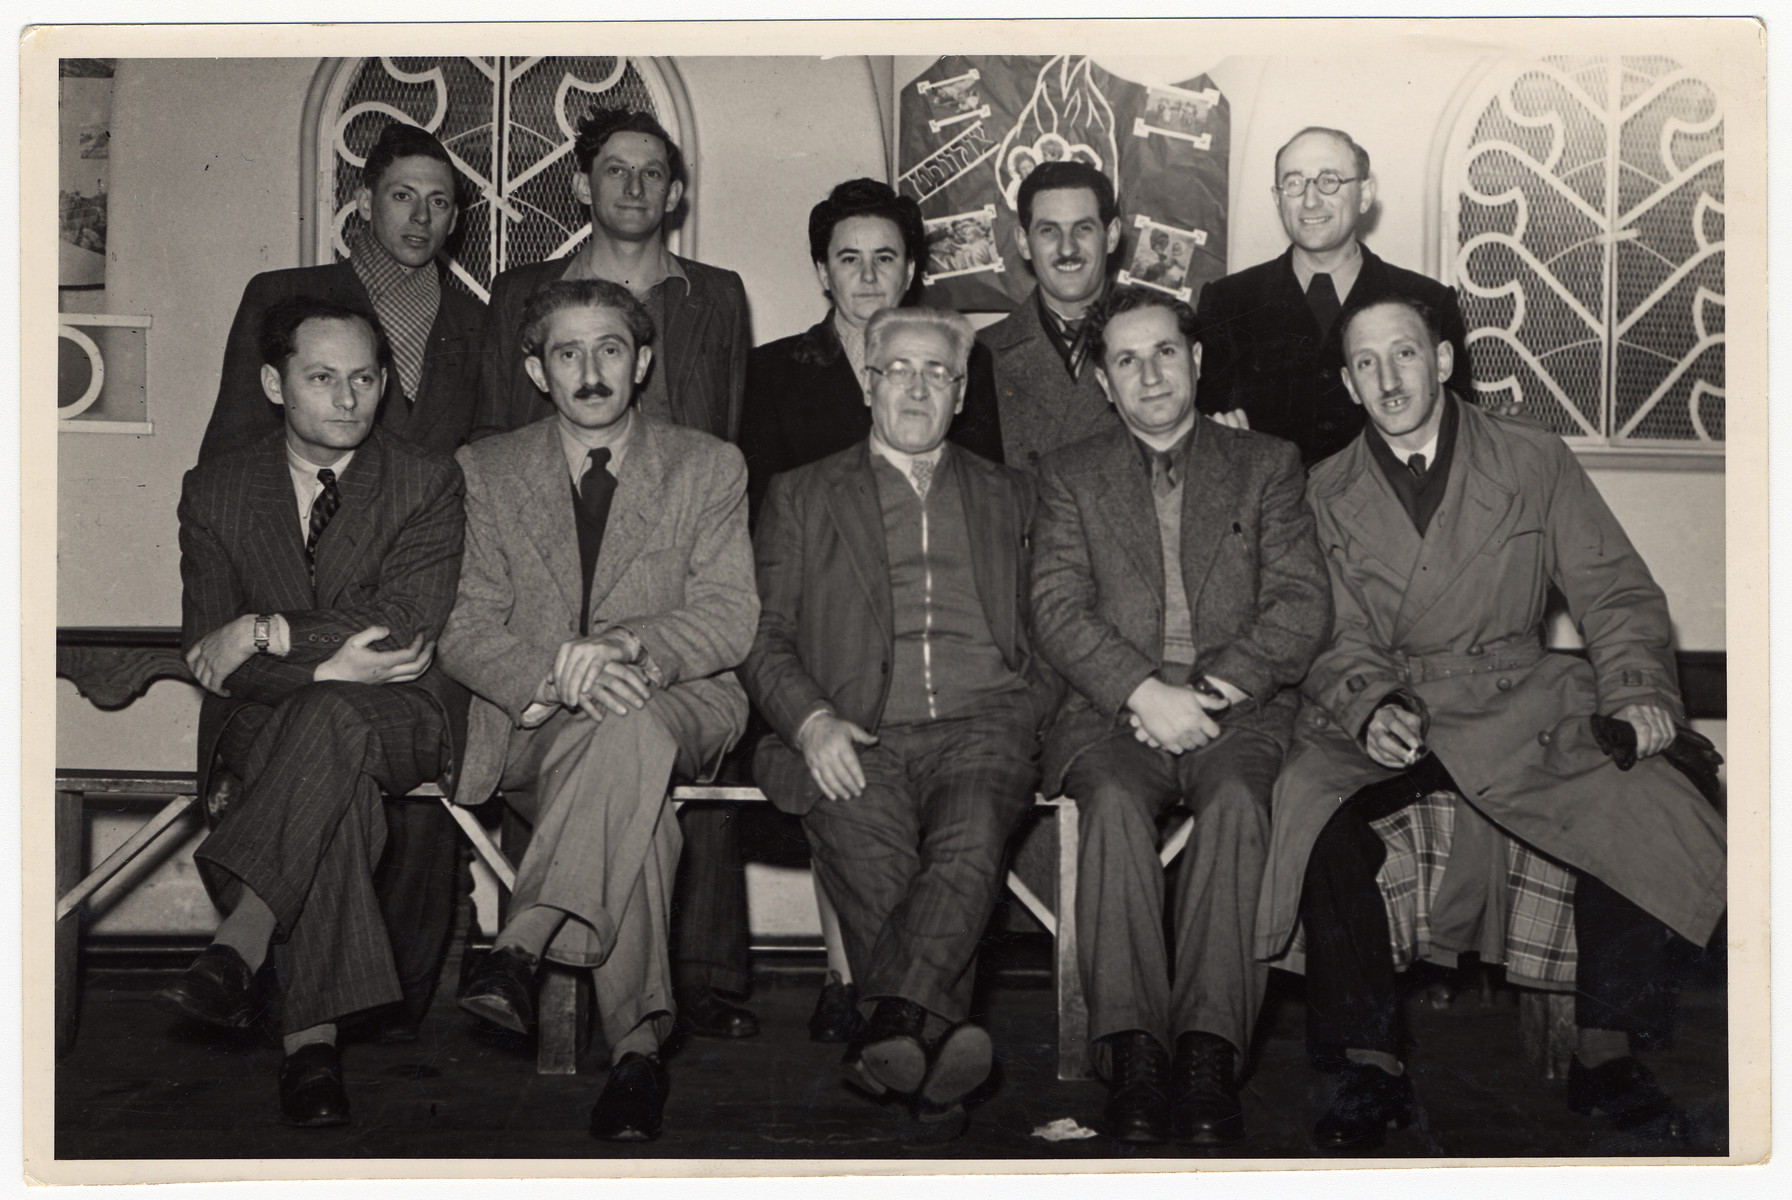 Group portrait of the organizers of Aliyah Bet (illegal immigration to Palestine) in Belgium.  Among those pictured is Willy Katz (back row, second from the right). David Tabachnik is seated second from the left.  His wife Reva is standing in the center.